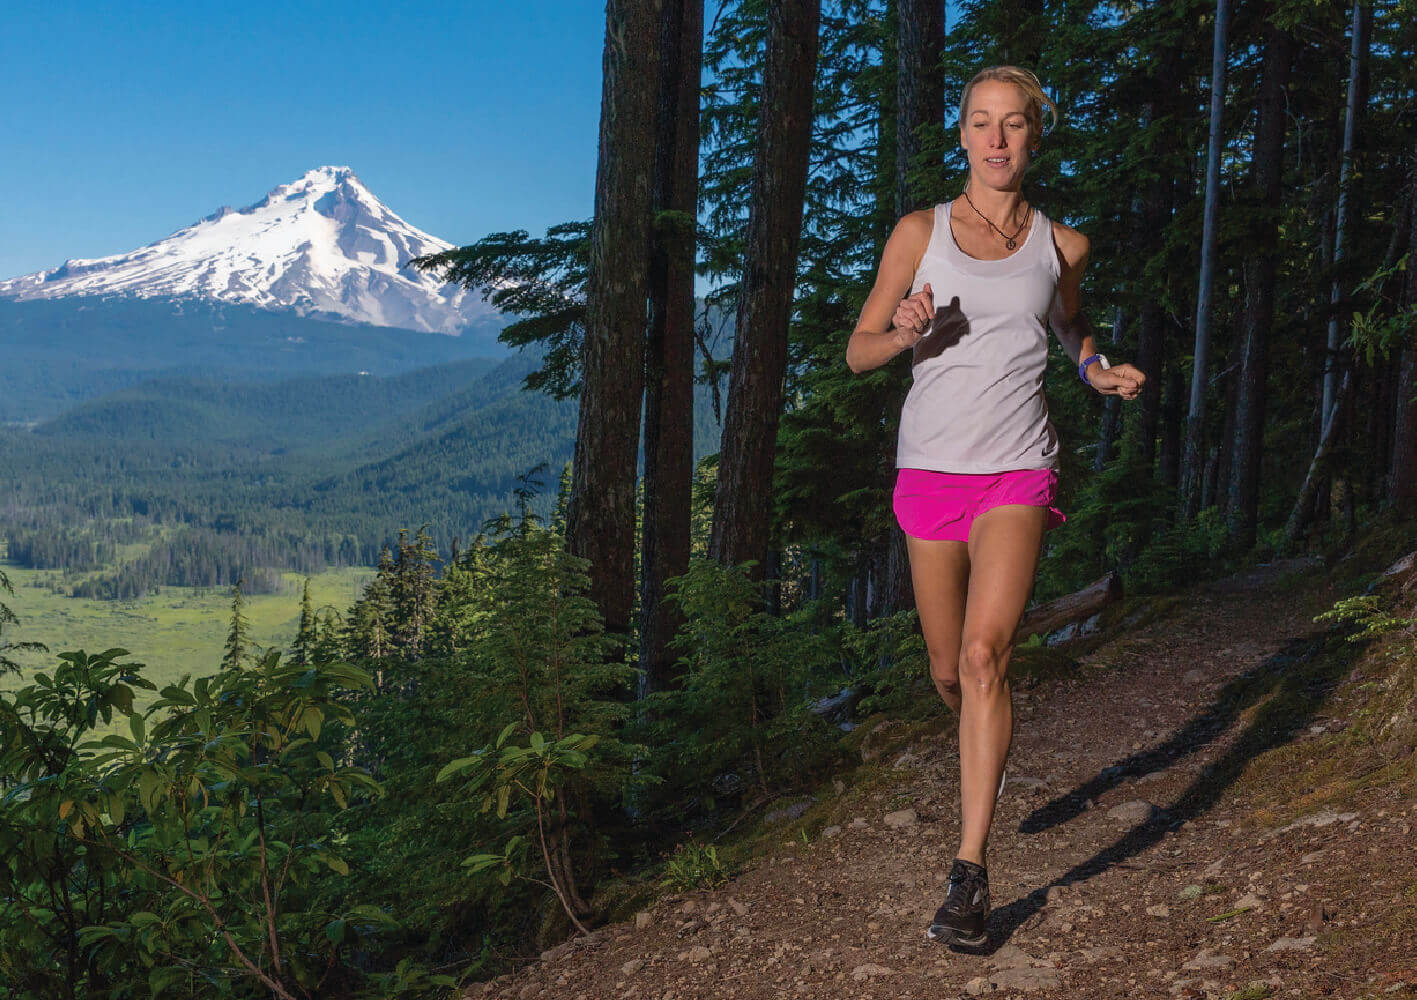 Spenco​ ​brand​ ​ambassador,​ ​Melissa​ ​Ruse​ ​running​ ​mid-race​ ​in​ ​a​ ​city